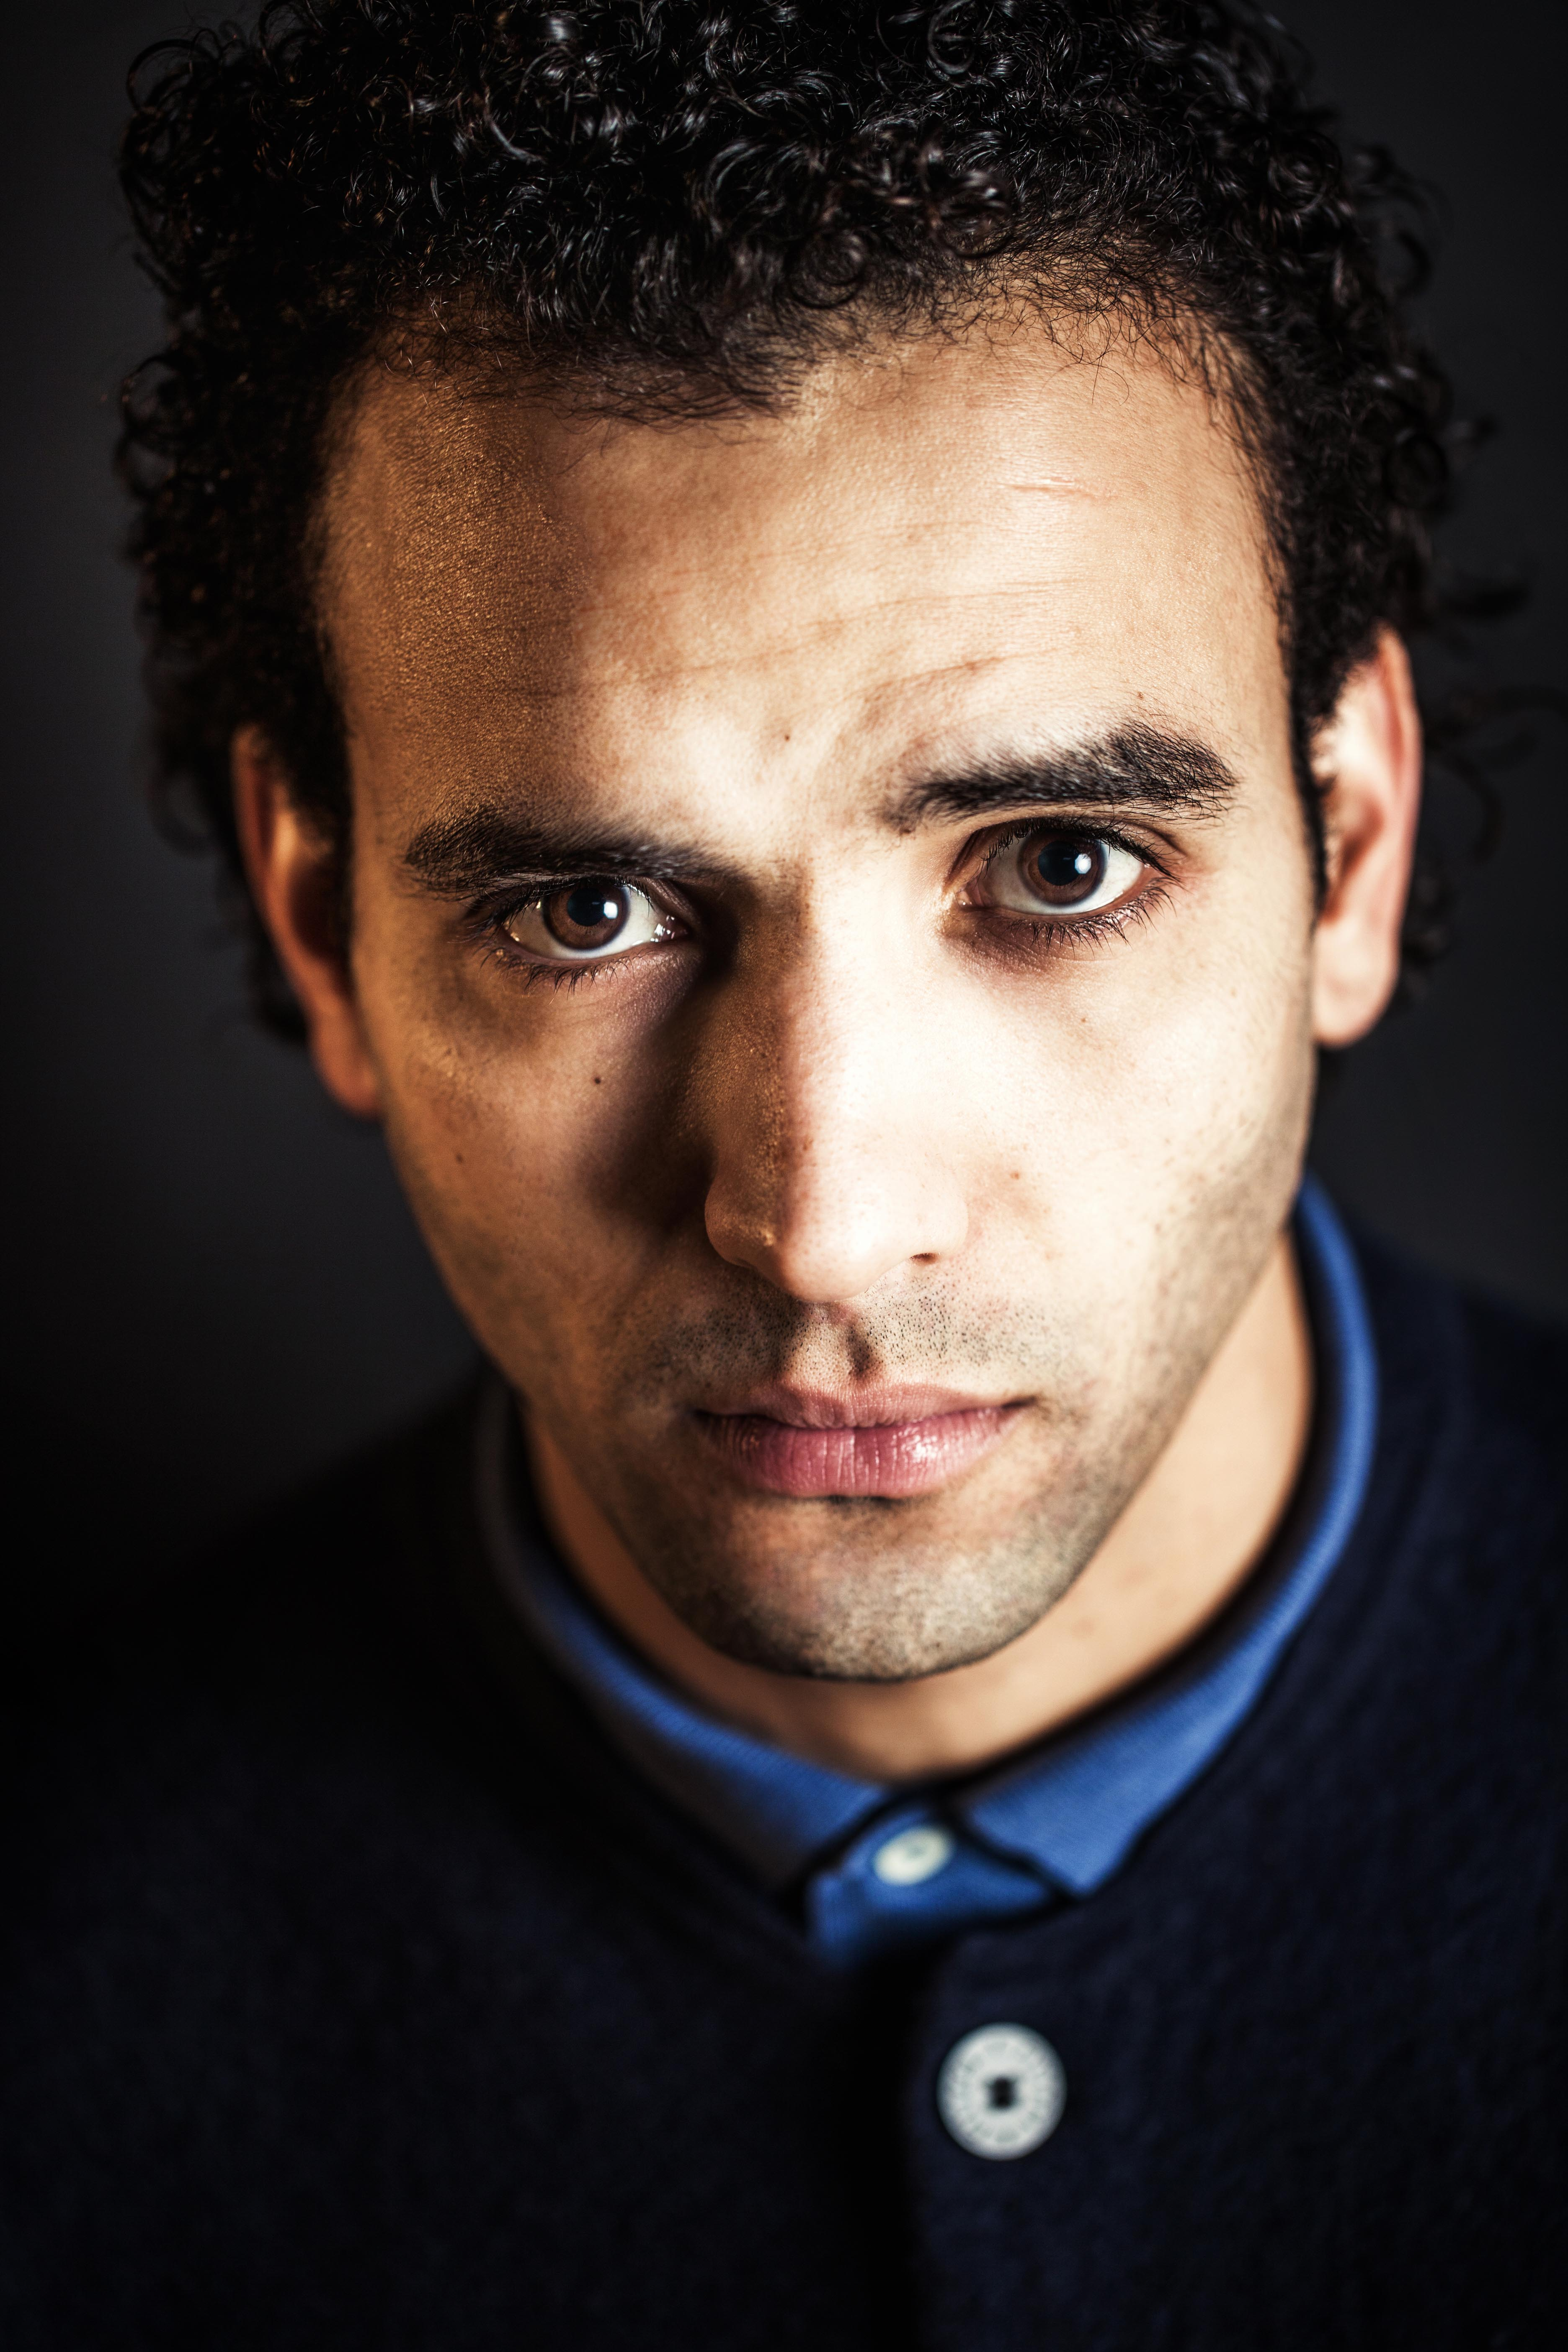 The 35-year old son of father (?) and mother(?) Marwan Kenzari in 2018 photo. Marwan Kenzari earned a  million dollar salary - leaving the net worth at 1.3 million in 2018